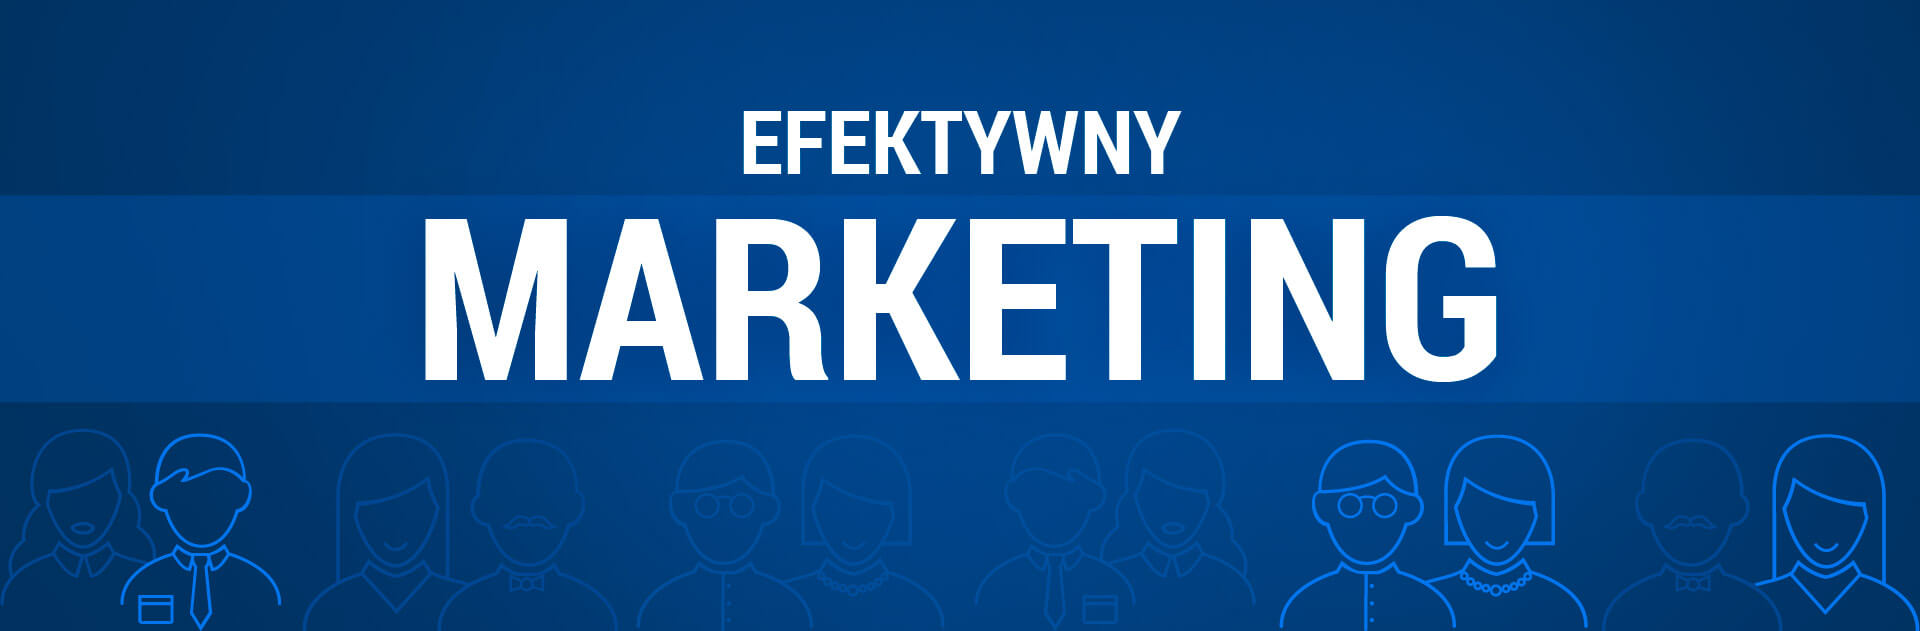 efektywny marketing